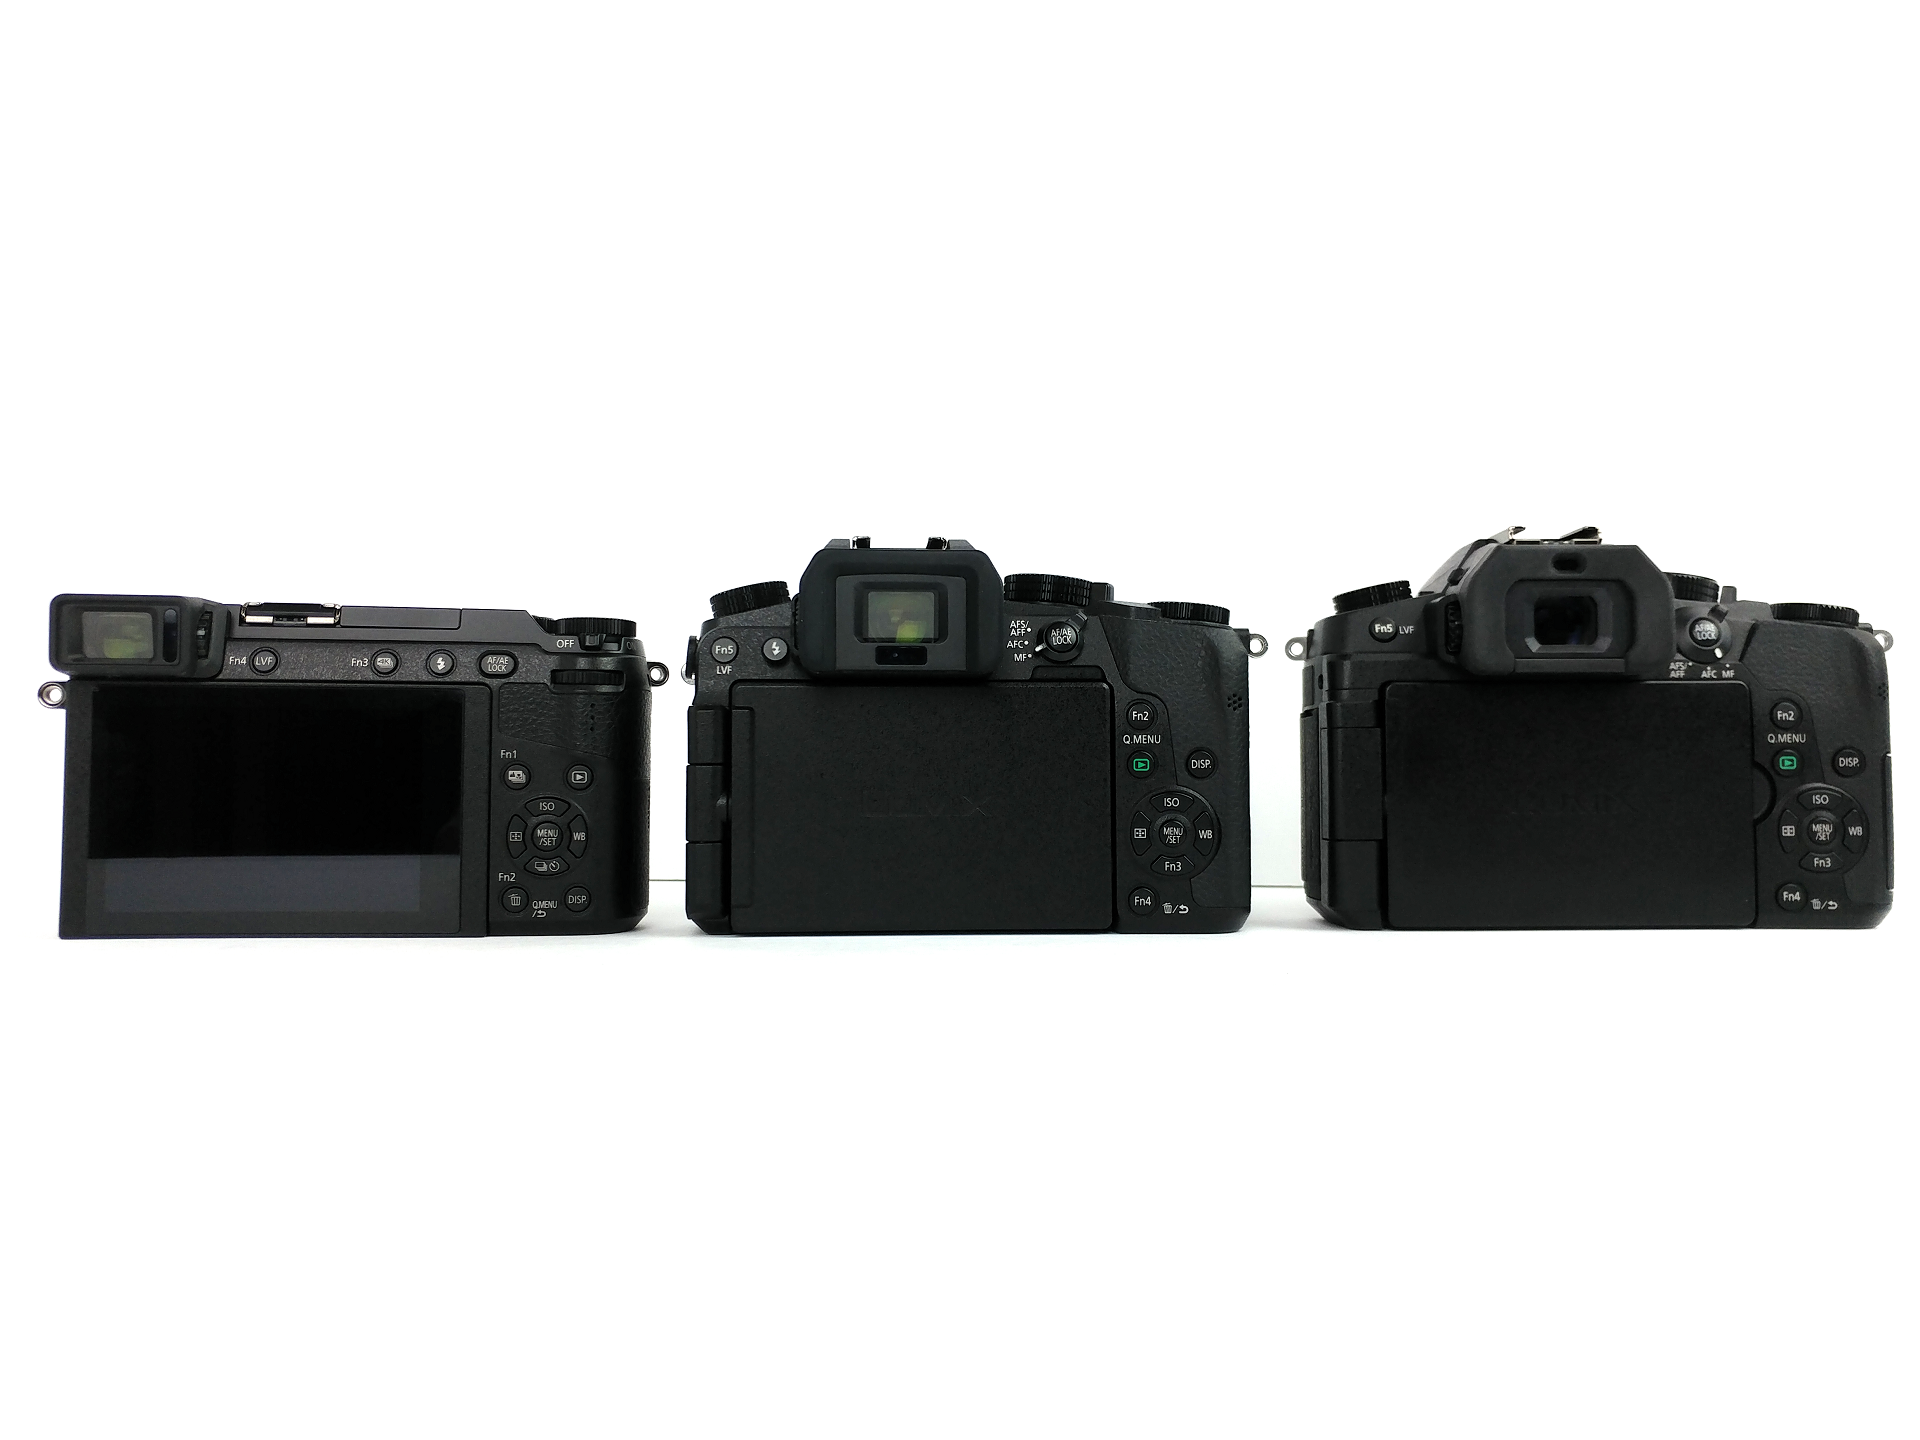 Panasonic Lumix G7, GX85, and G85 4K Camera